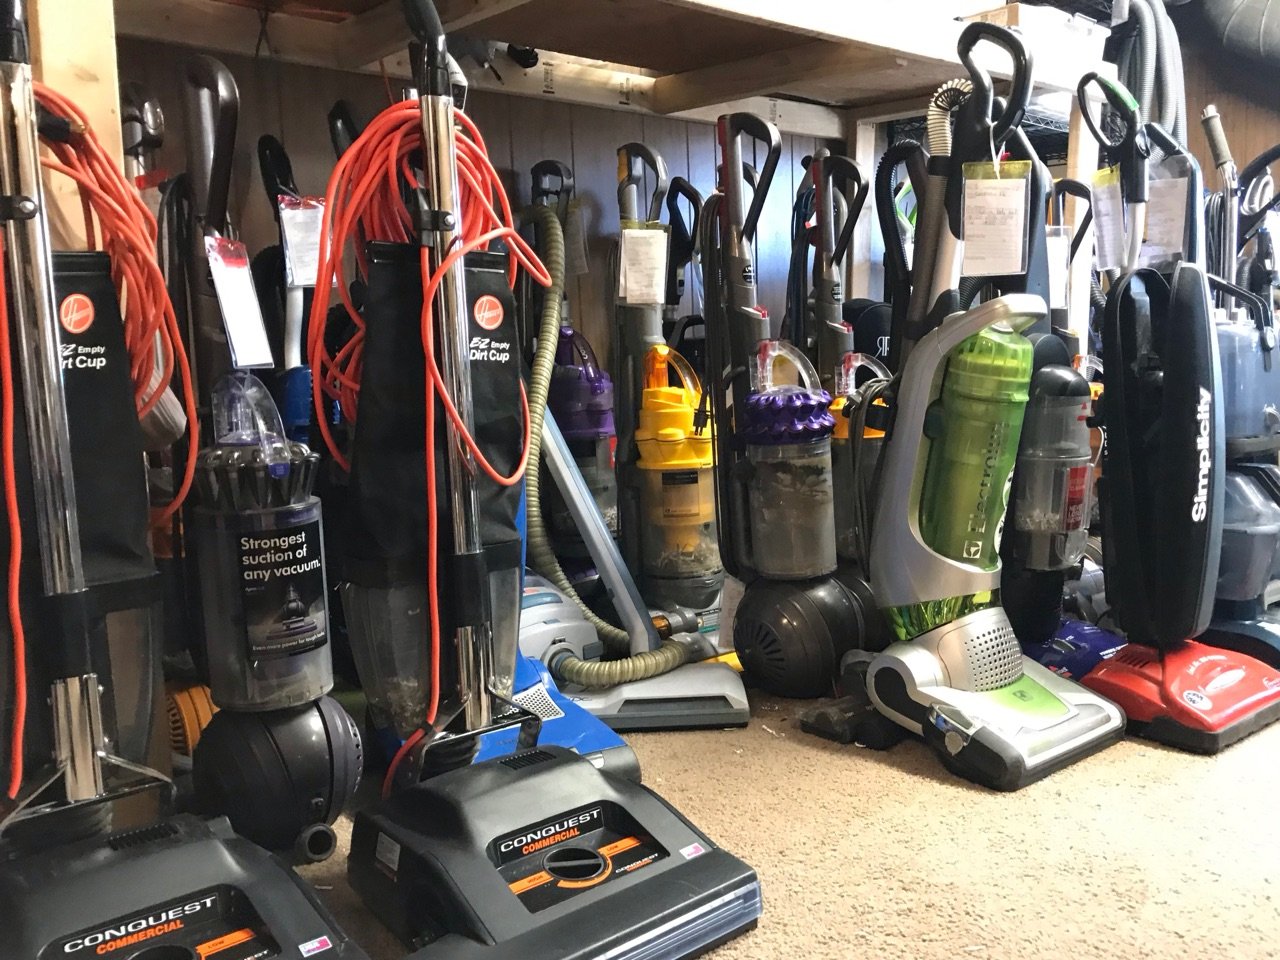 repaired residential and commercial vacuums